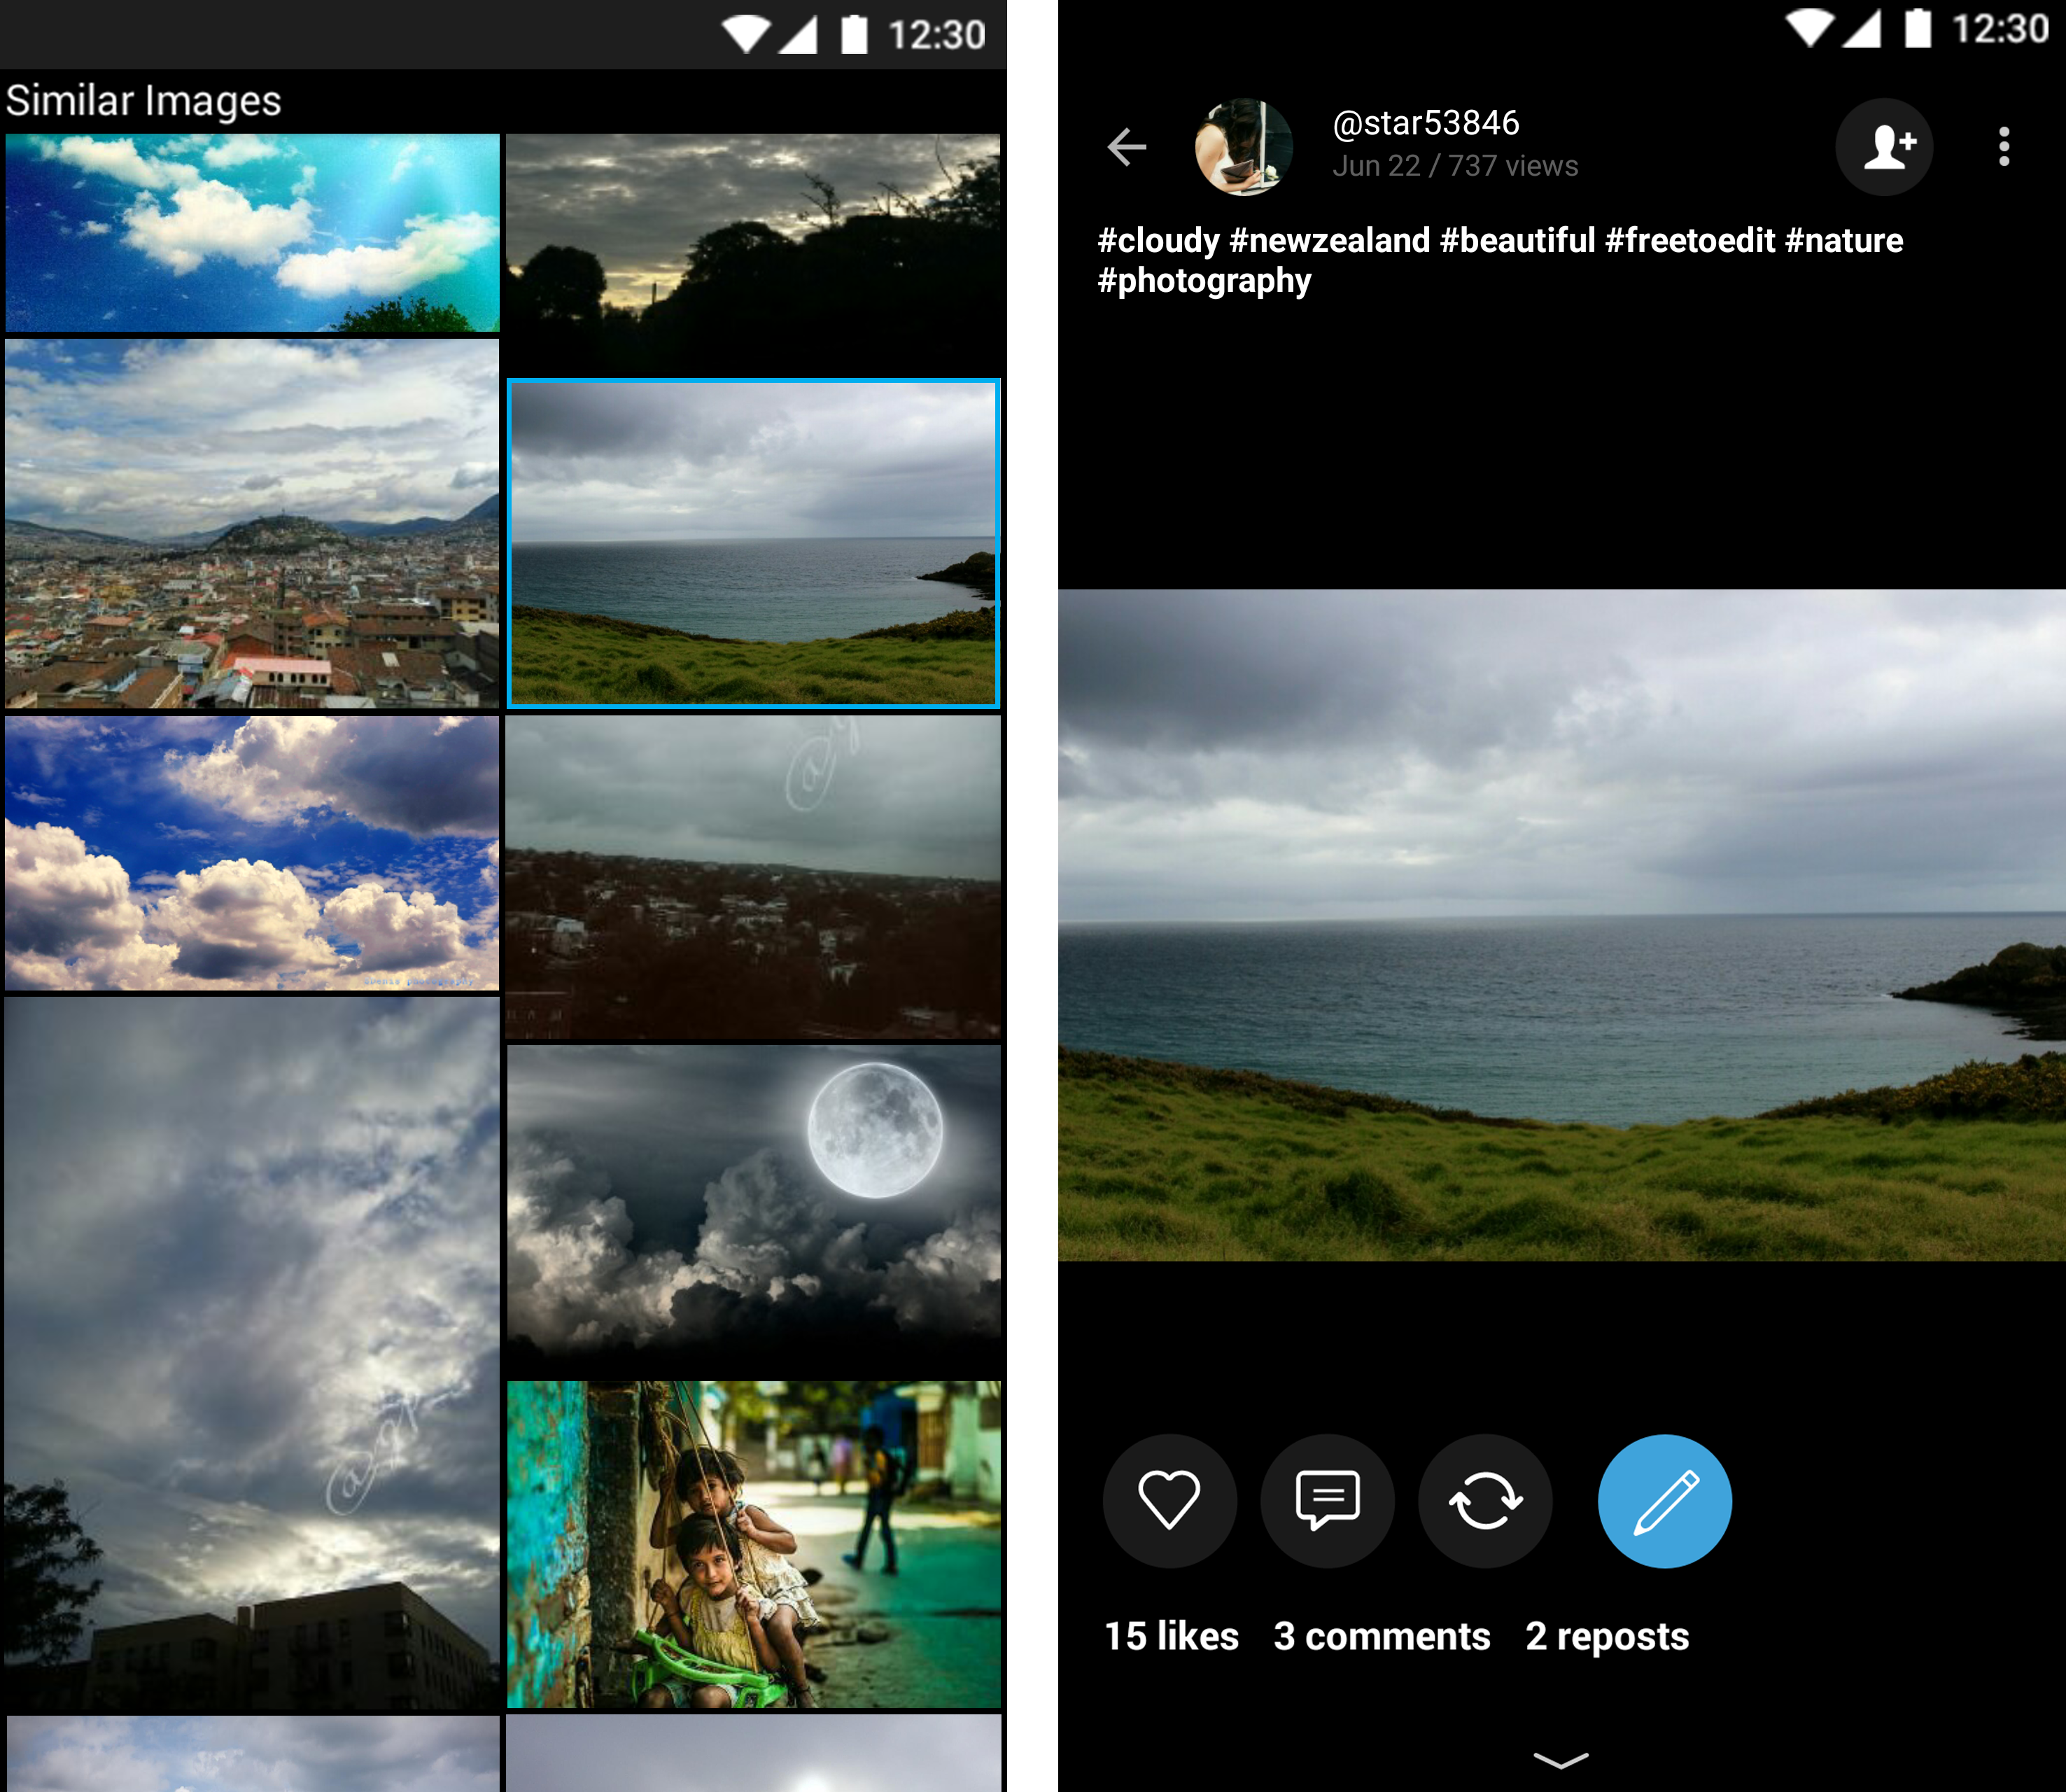 Find Similar Images with PicsArt Photo Gallery